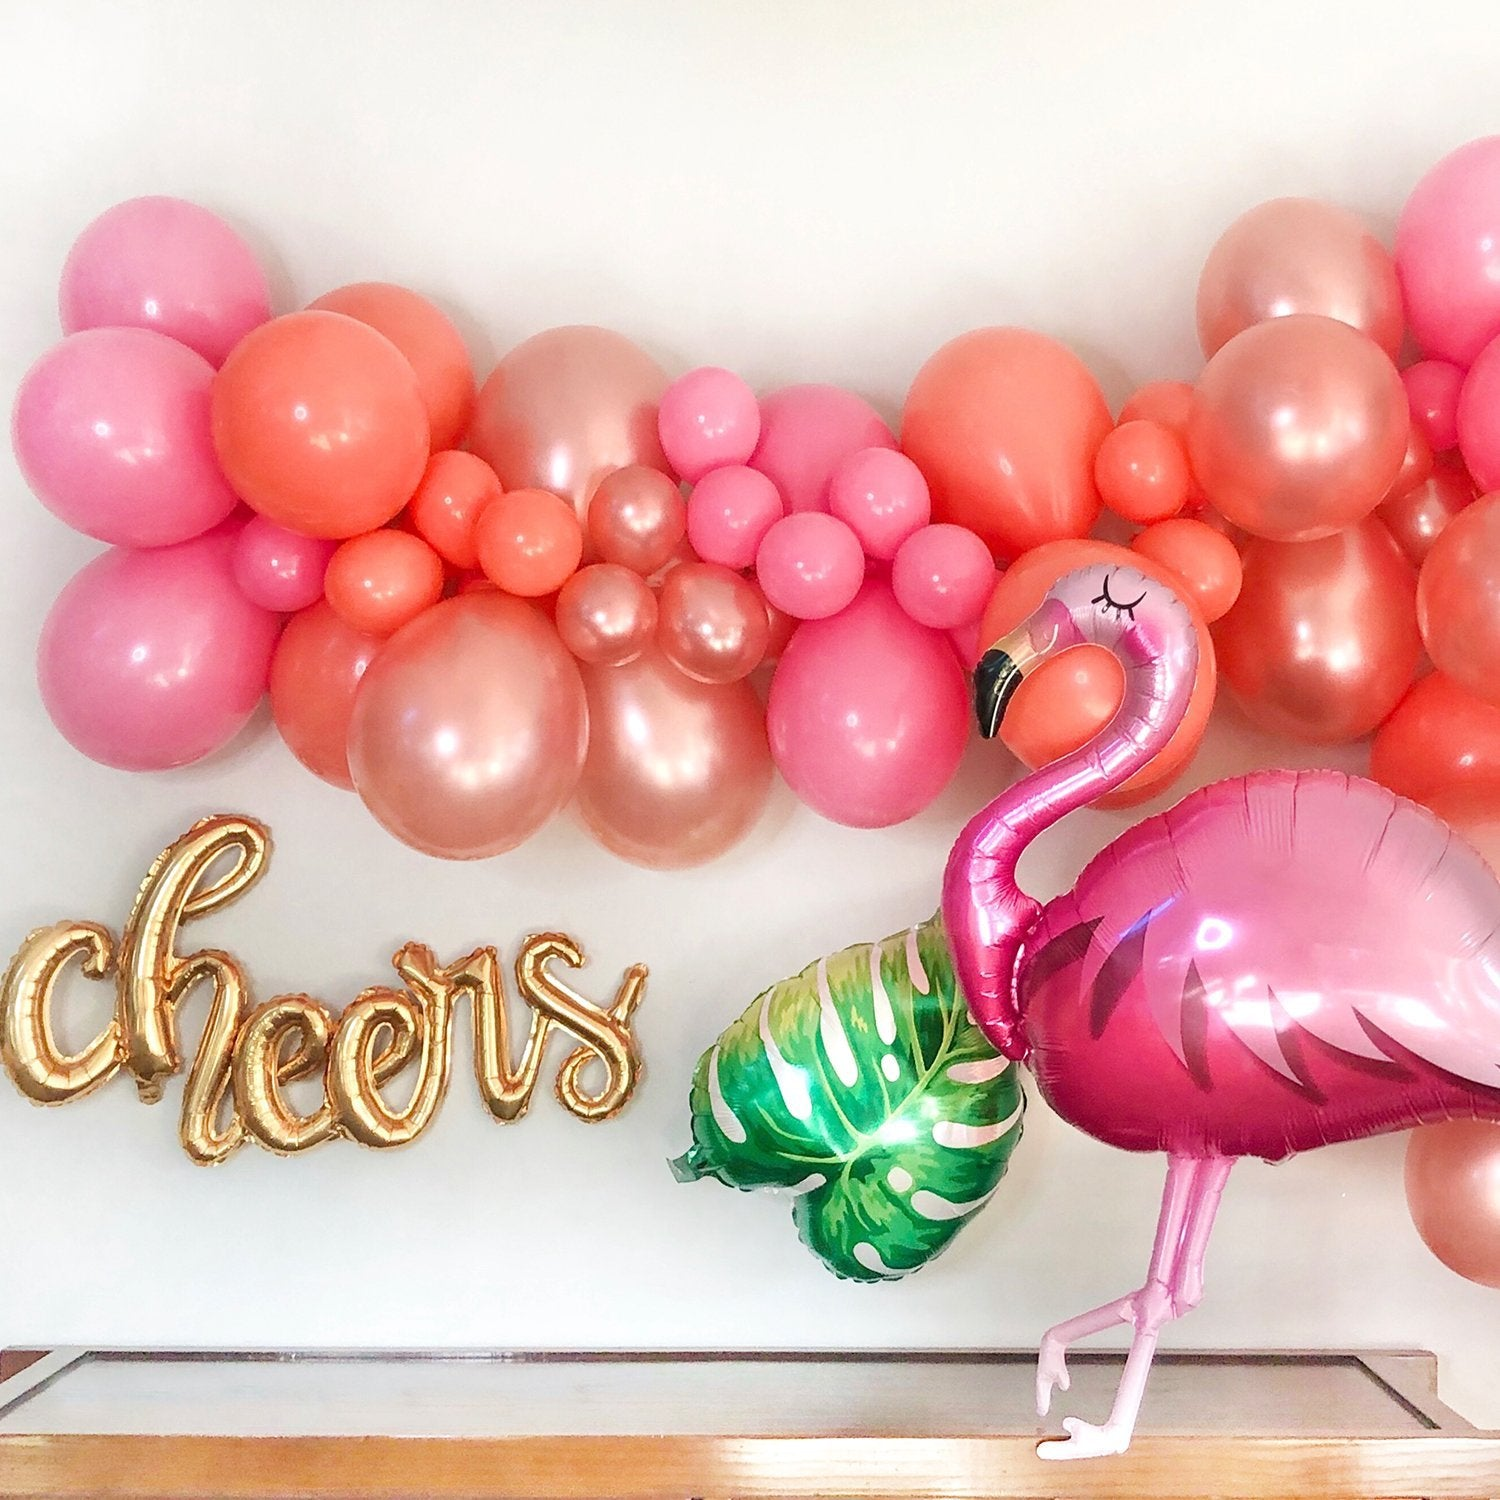 Flamingo Party Decorations - DIY Flamingo Balloon Garland - Balloon Garland Kit - Pretty Collected